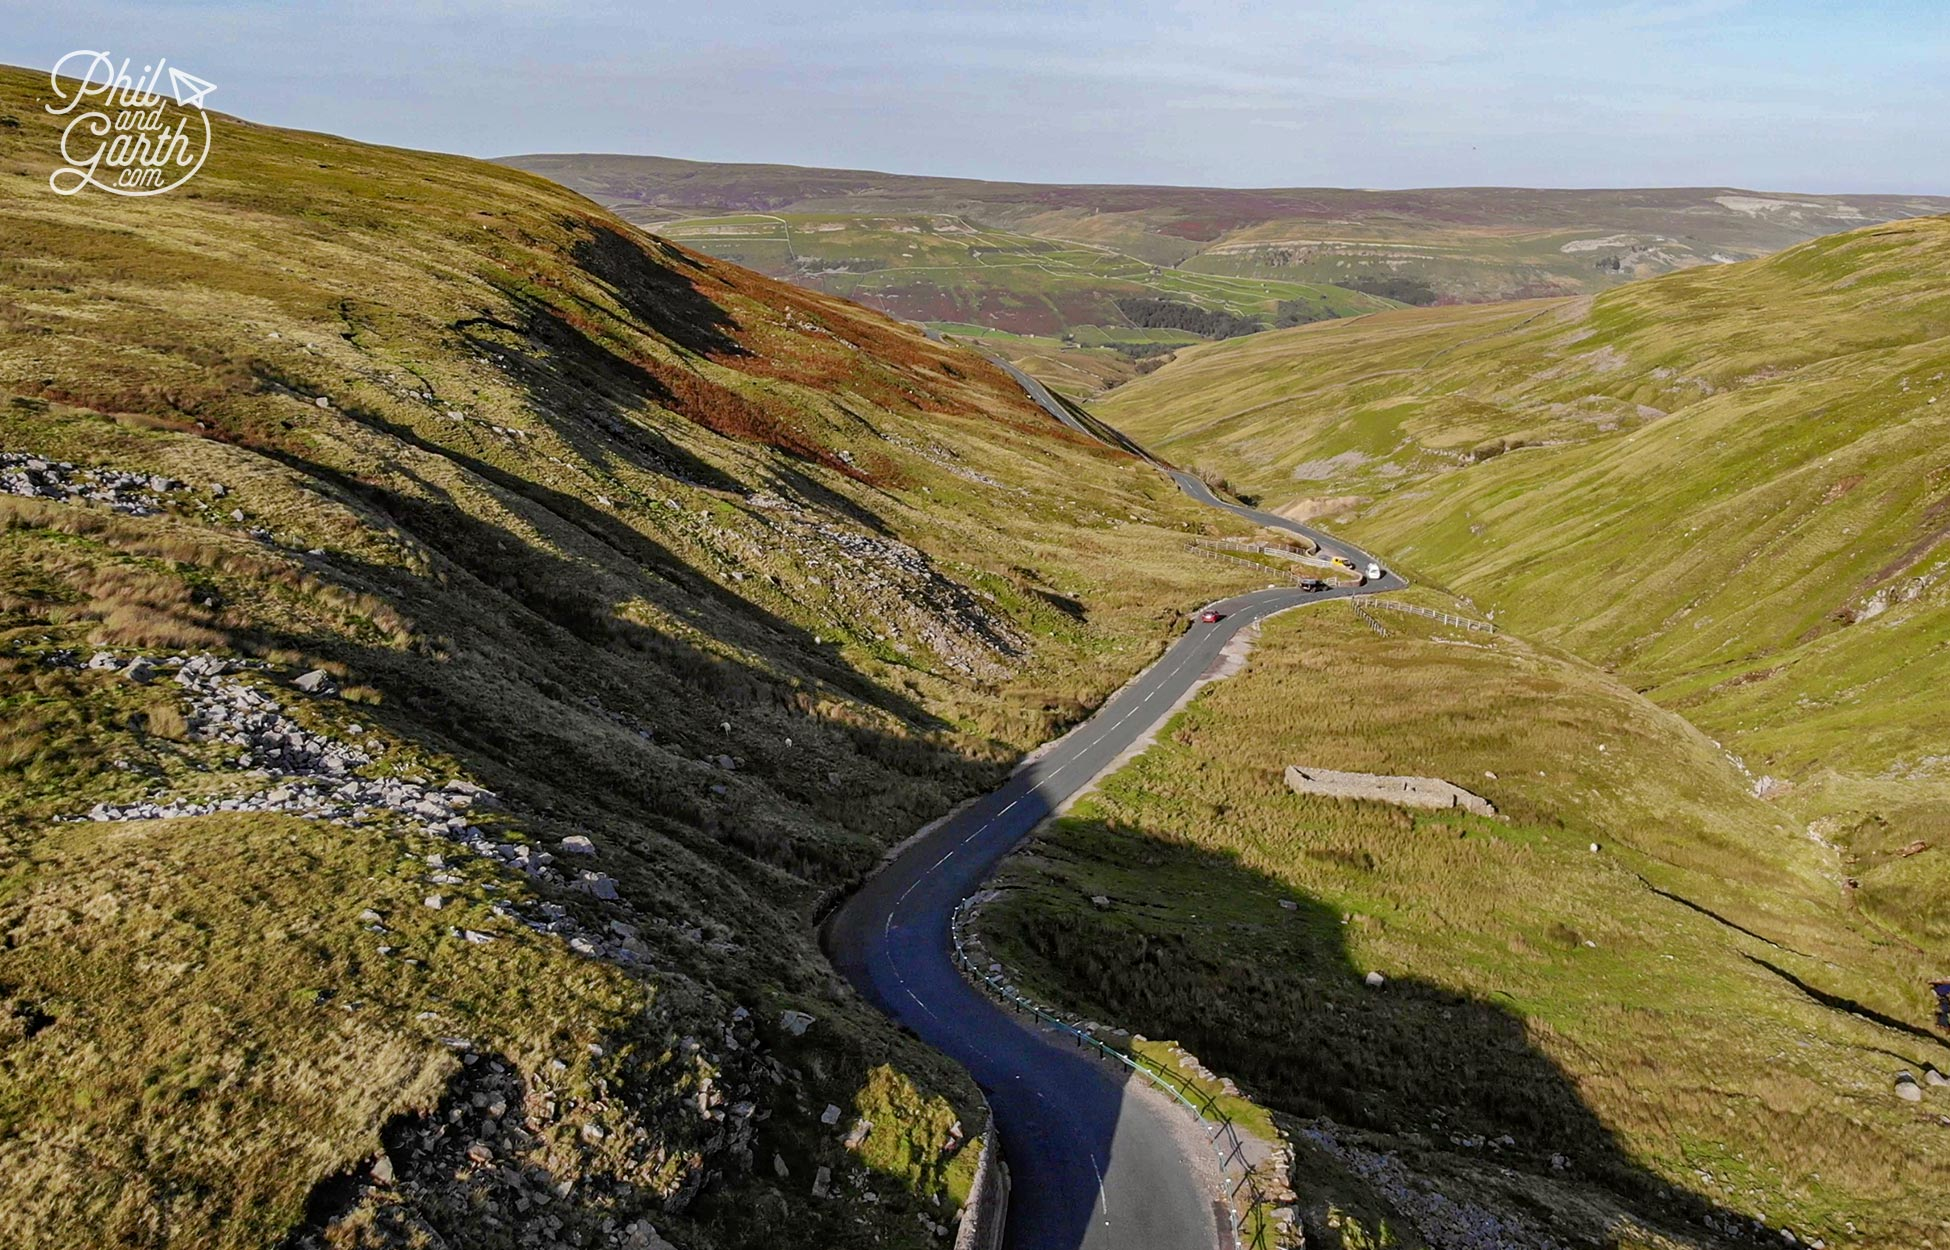 Our drone shot of the Buttertubs Pass